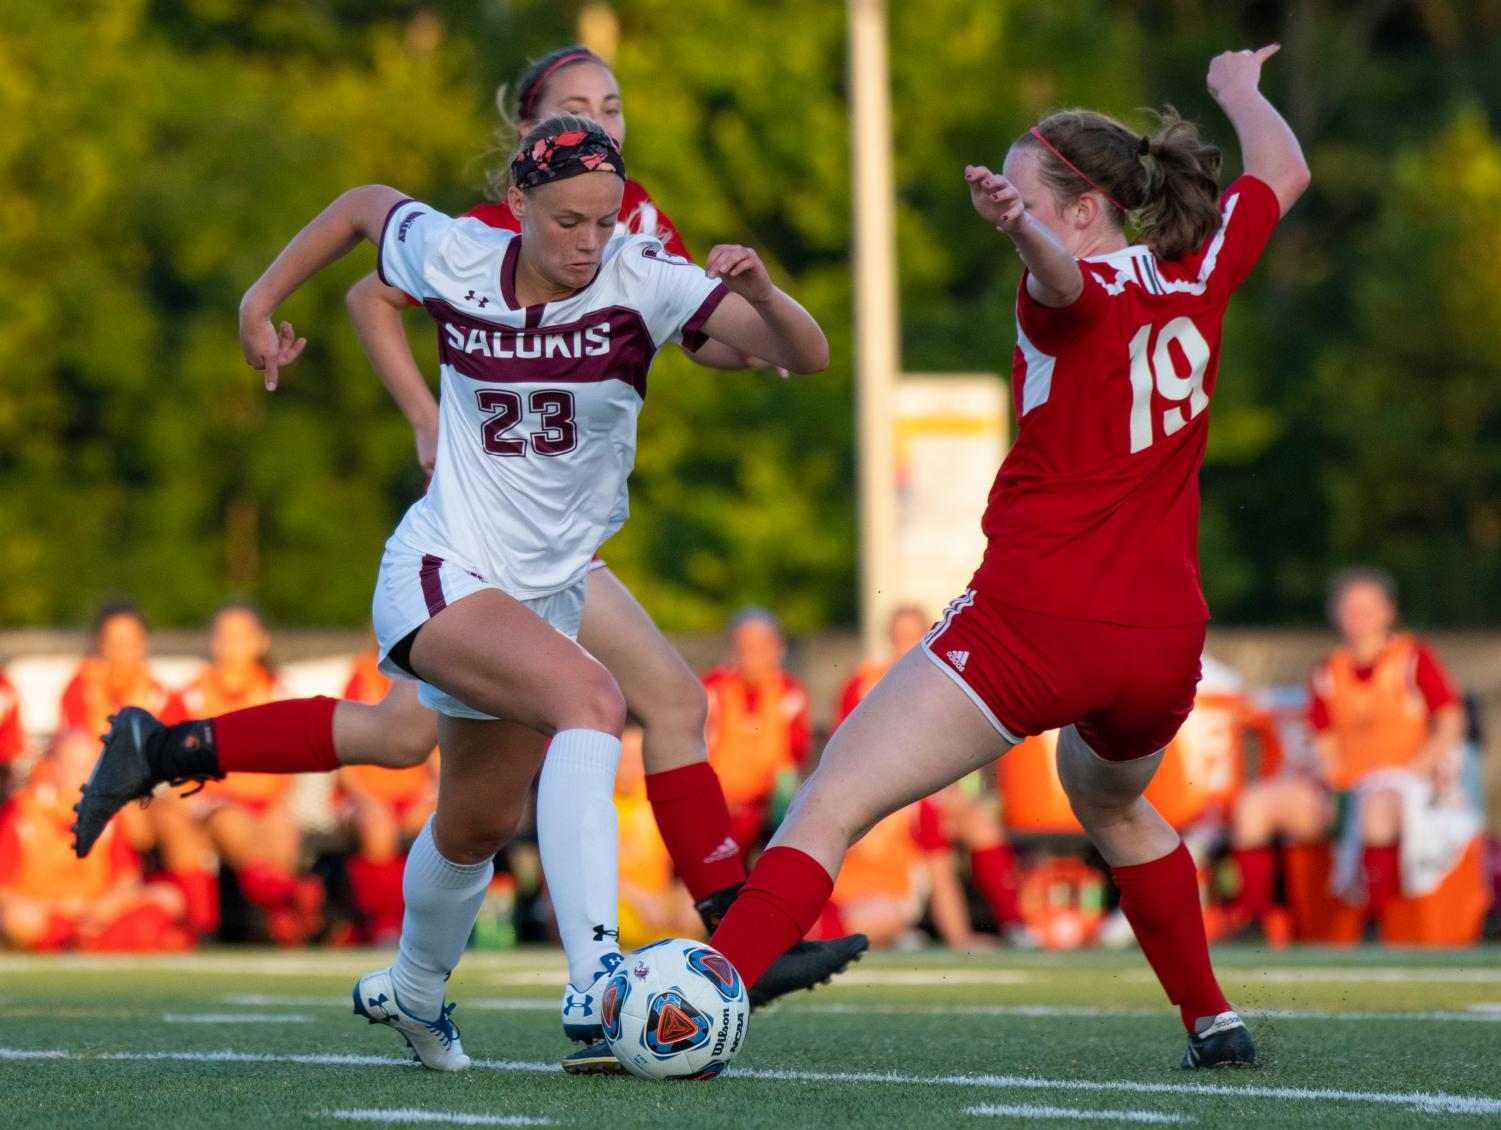 Saluki+freshman+Kaitlyn+Akers+kicks+the+ball+past+the+defense+on+Tuesday%2C+Aug.+27%2C+2019+during+the+Salukis%27+1-0+win+against+the+Rose-Hulman+Fightin%27+Engineers+at+the+Lew+Hartzog+Track+%26+Field+Complex.